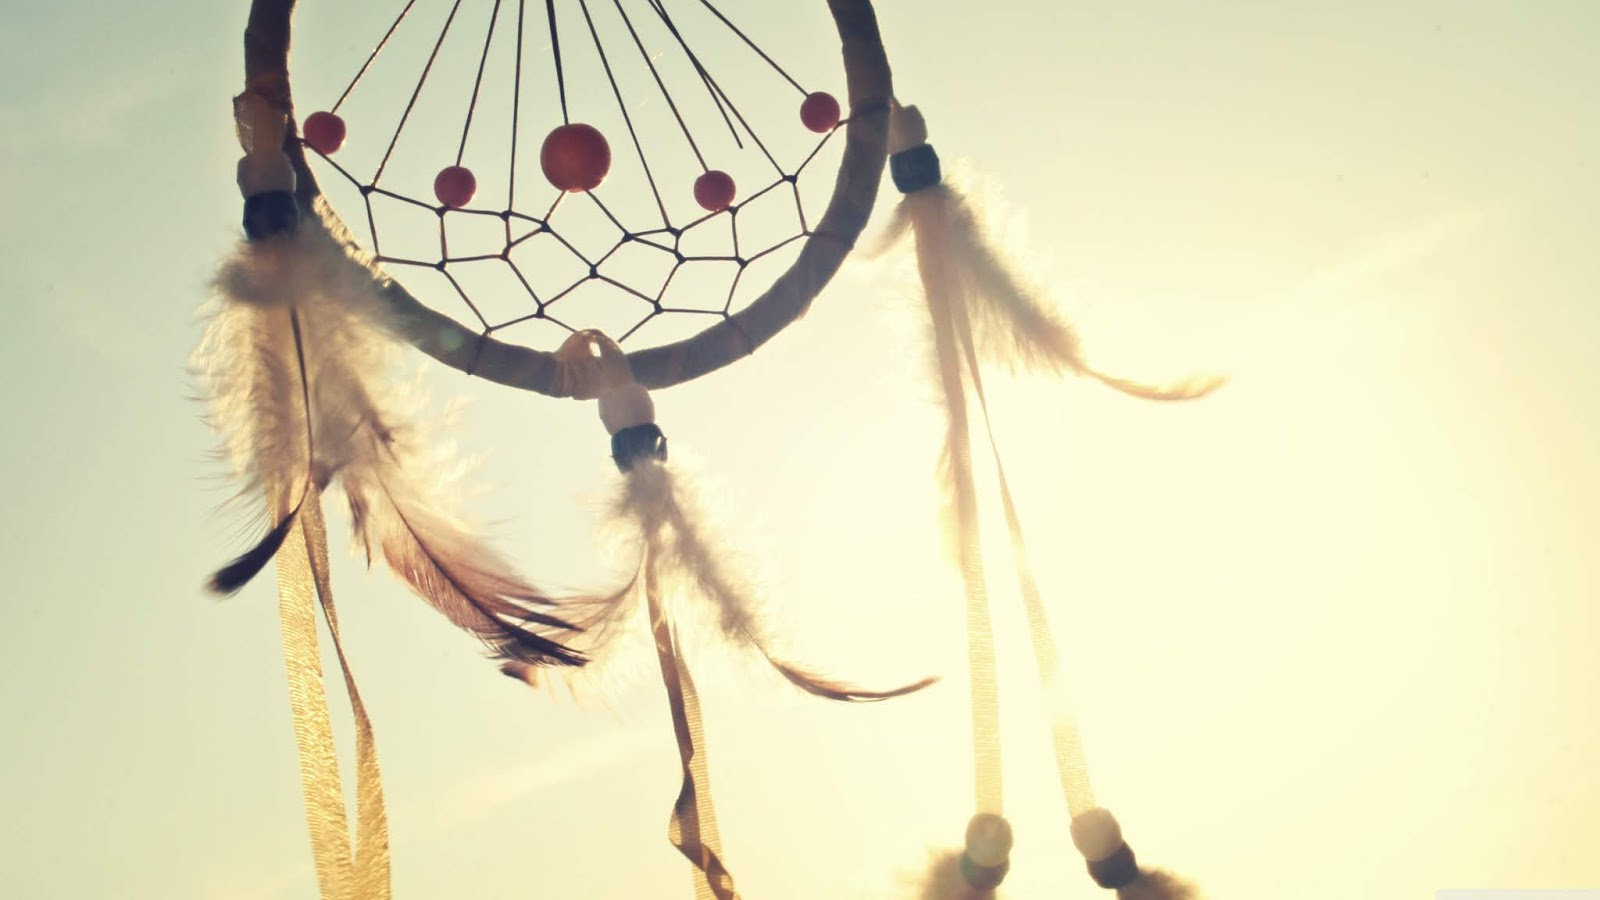 Beautiful closeup photography of a dream catcher against a sky background. With pretty feathers and bead work.